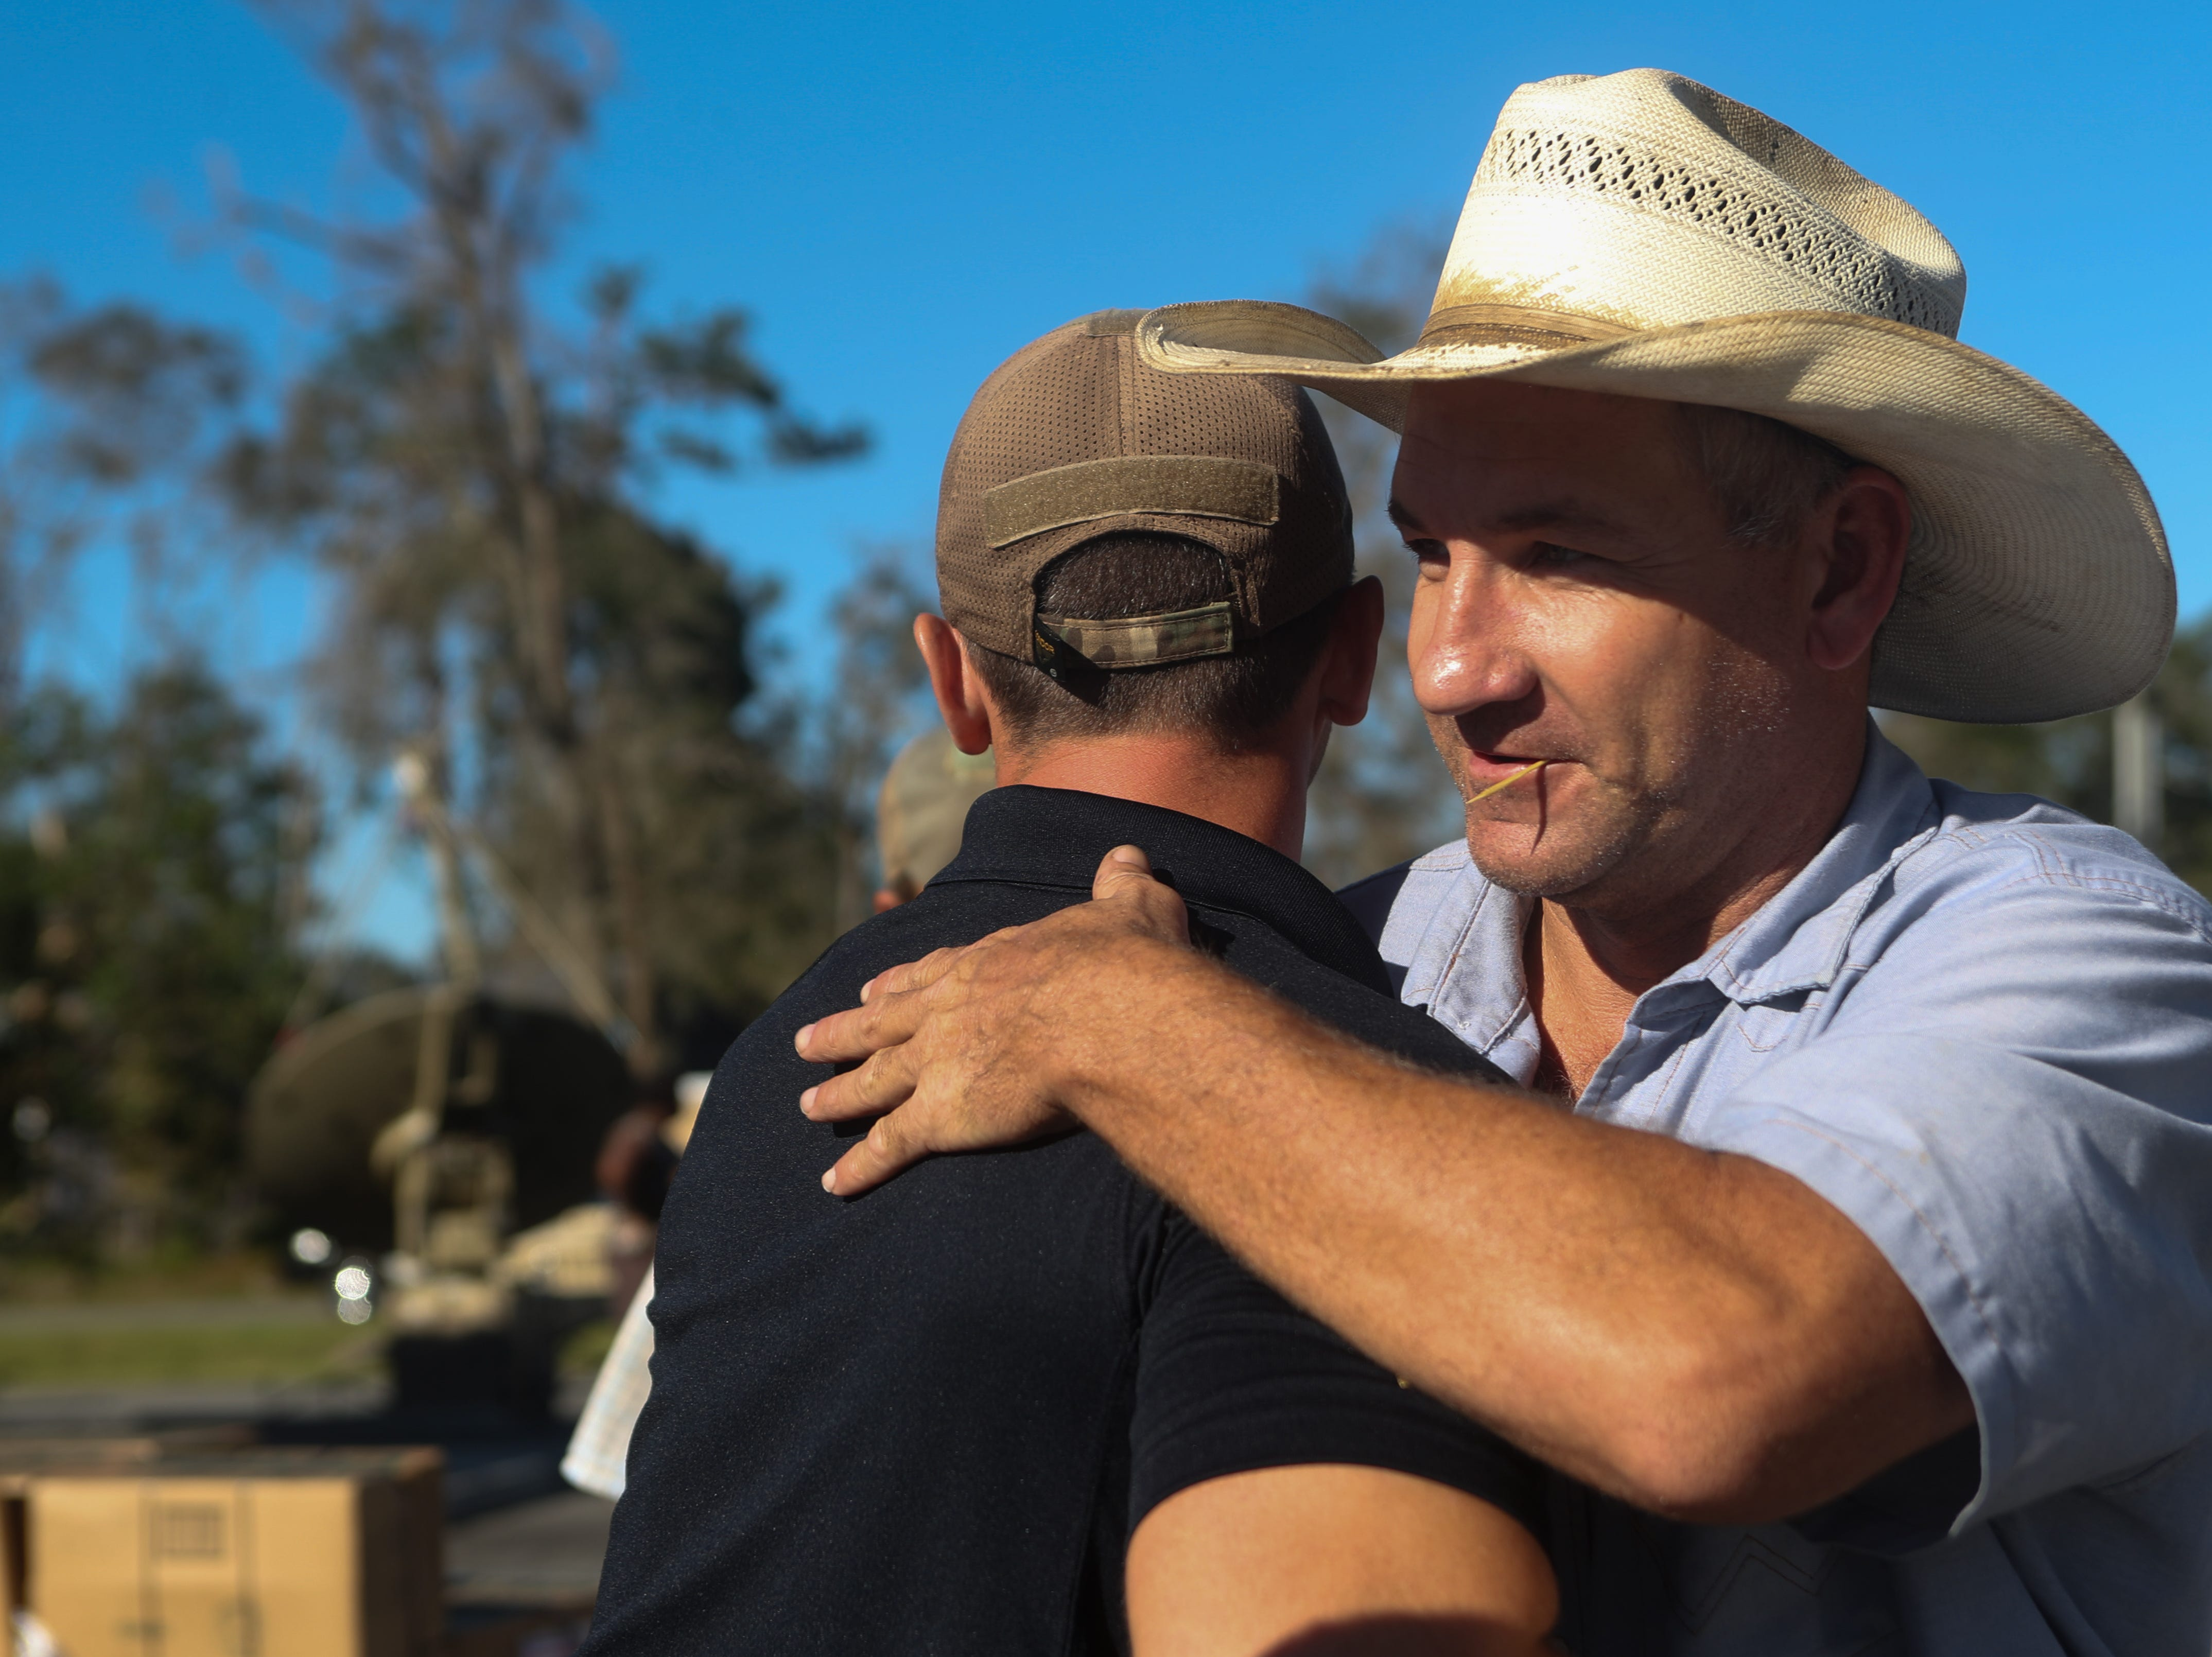 Florida Department of Law Enforcement Agent Robert Arnold, left, hugs David Carson, right, as they see each other for the first time in the aftermath of Hurricane Michael Friday, Oct. 12, 2018. Arnold was working at the Liberty County Emergency Operations Center in Bristol, Fla. to distribute food and water to residents.